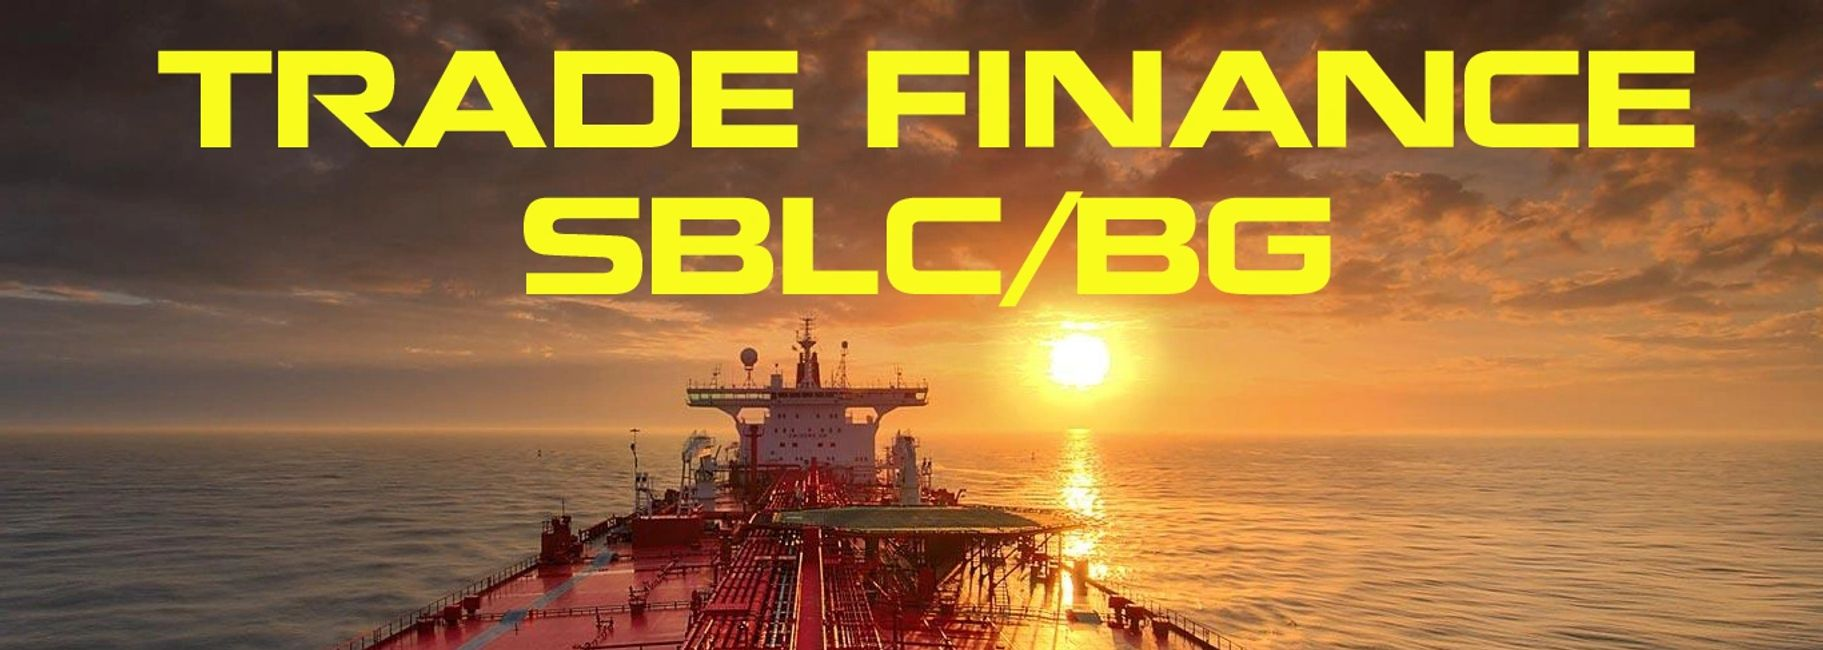 SBLC / BG (Trade Financing)- Global Oil and Gas Trading